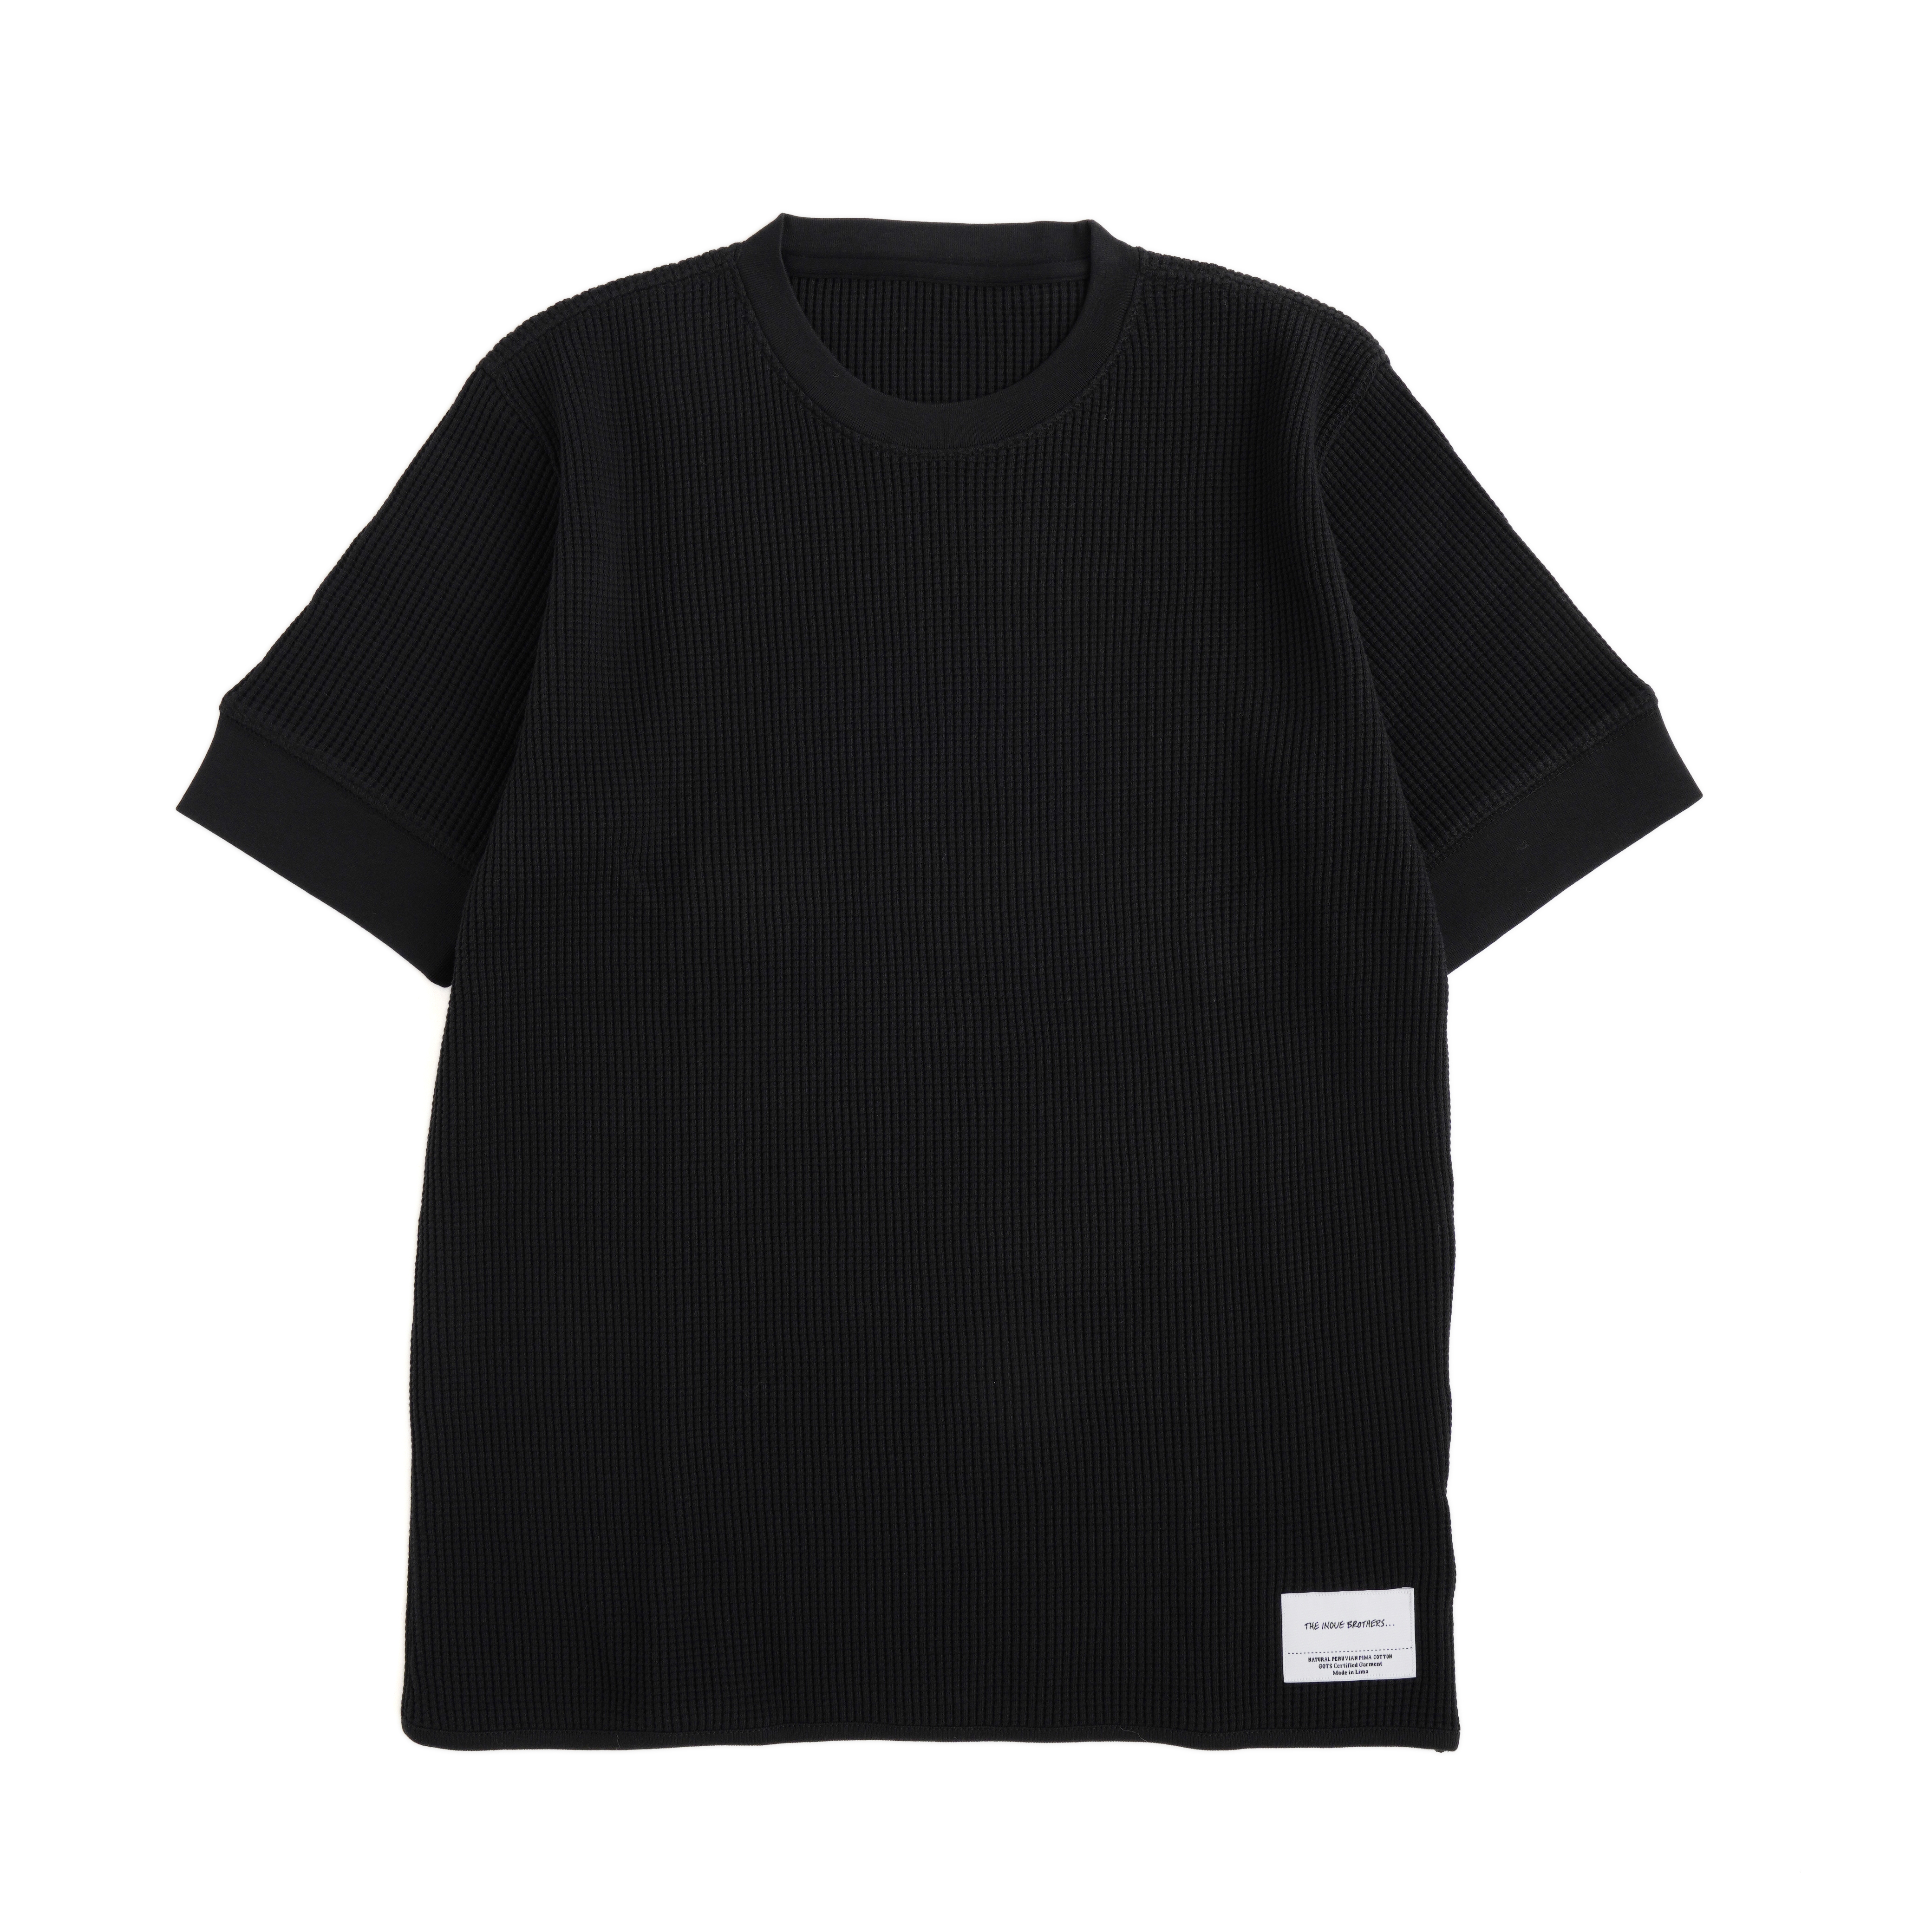 THE INOUE BROTHERS/Waffle T-shirt/Black